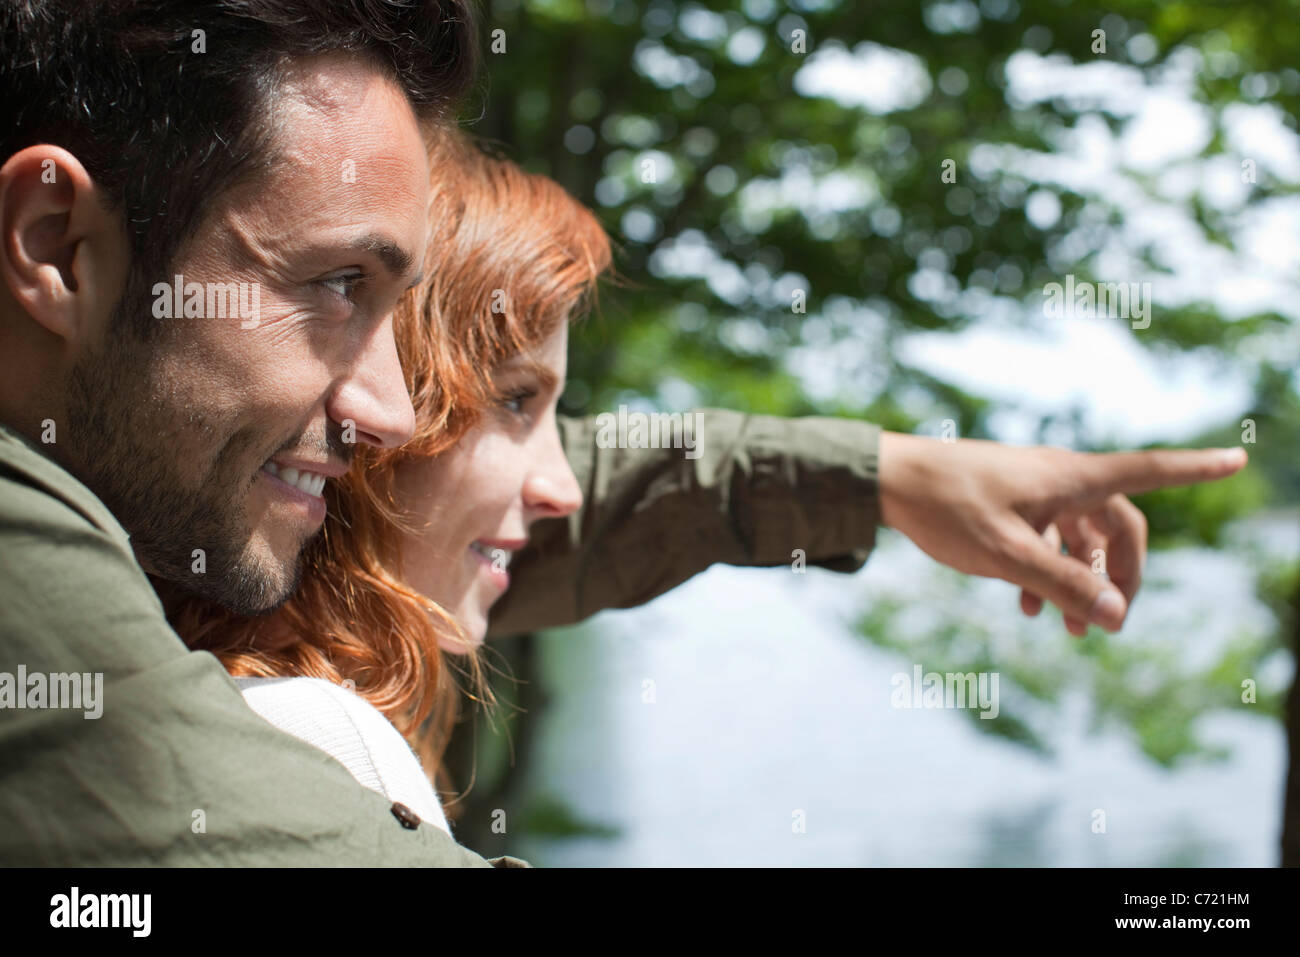 Couple together outdoors, looking at view - Stock Image